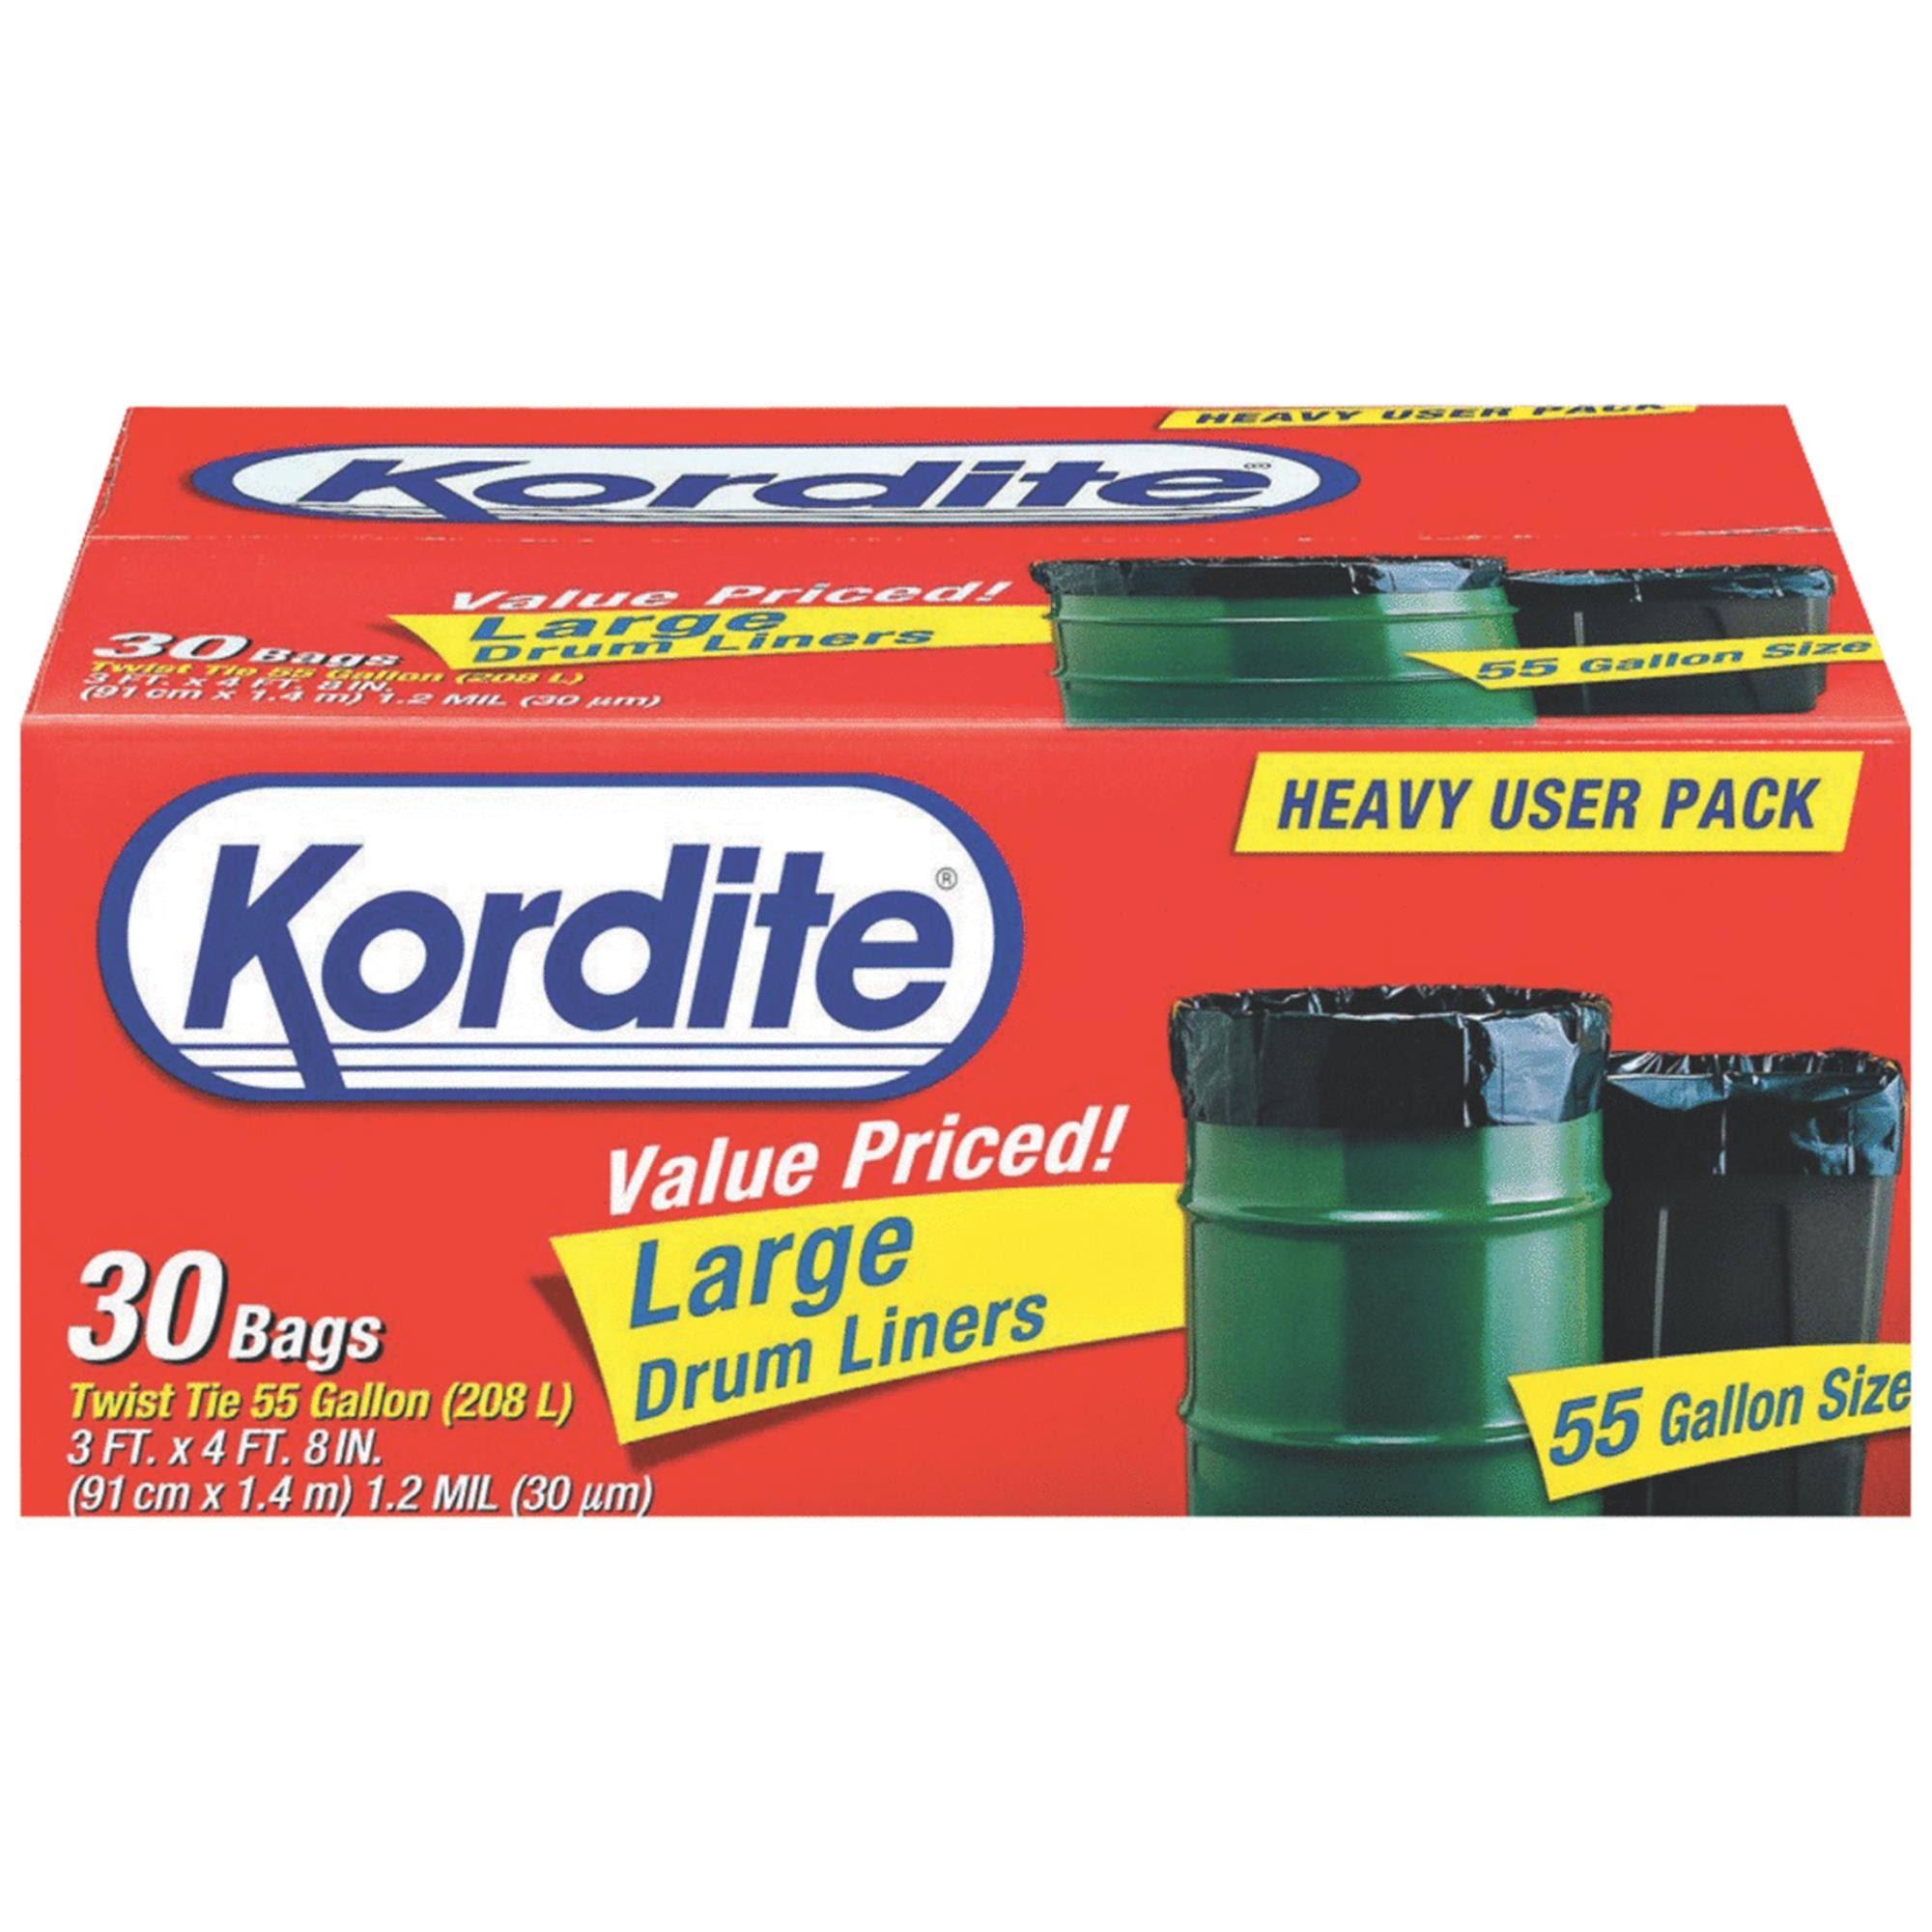 Kordite Twist Tie Large Drum Liners - 55 Gallon, 30 count